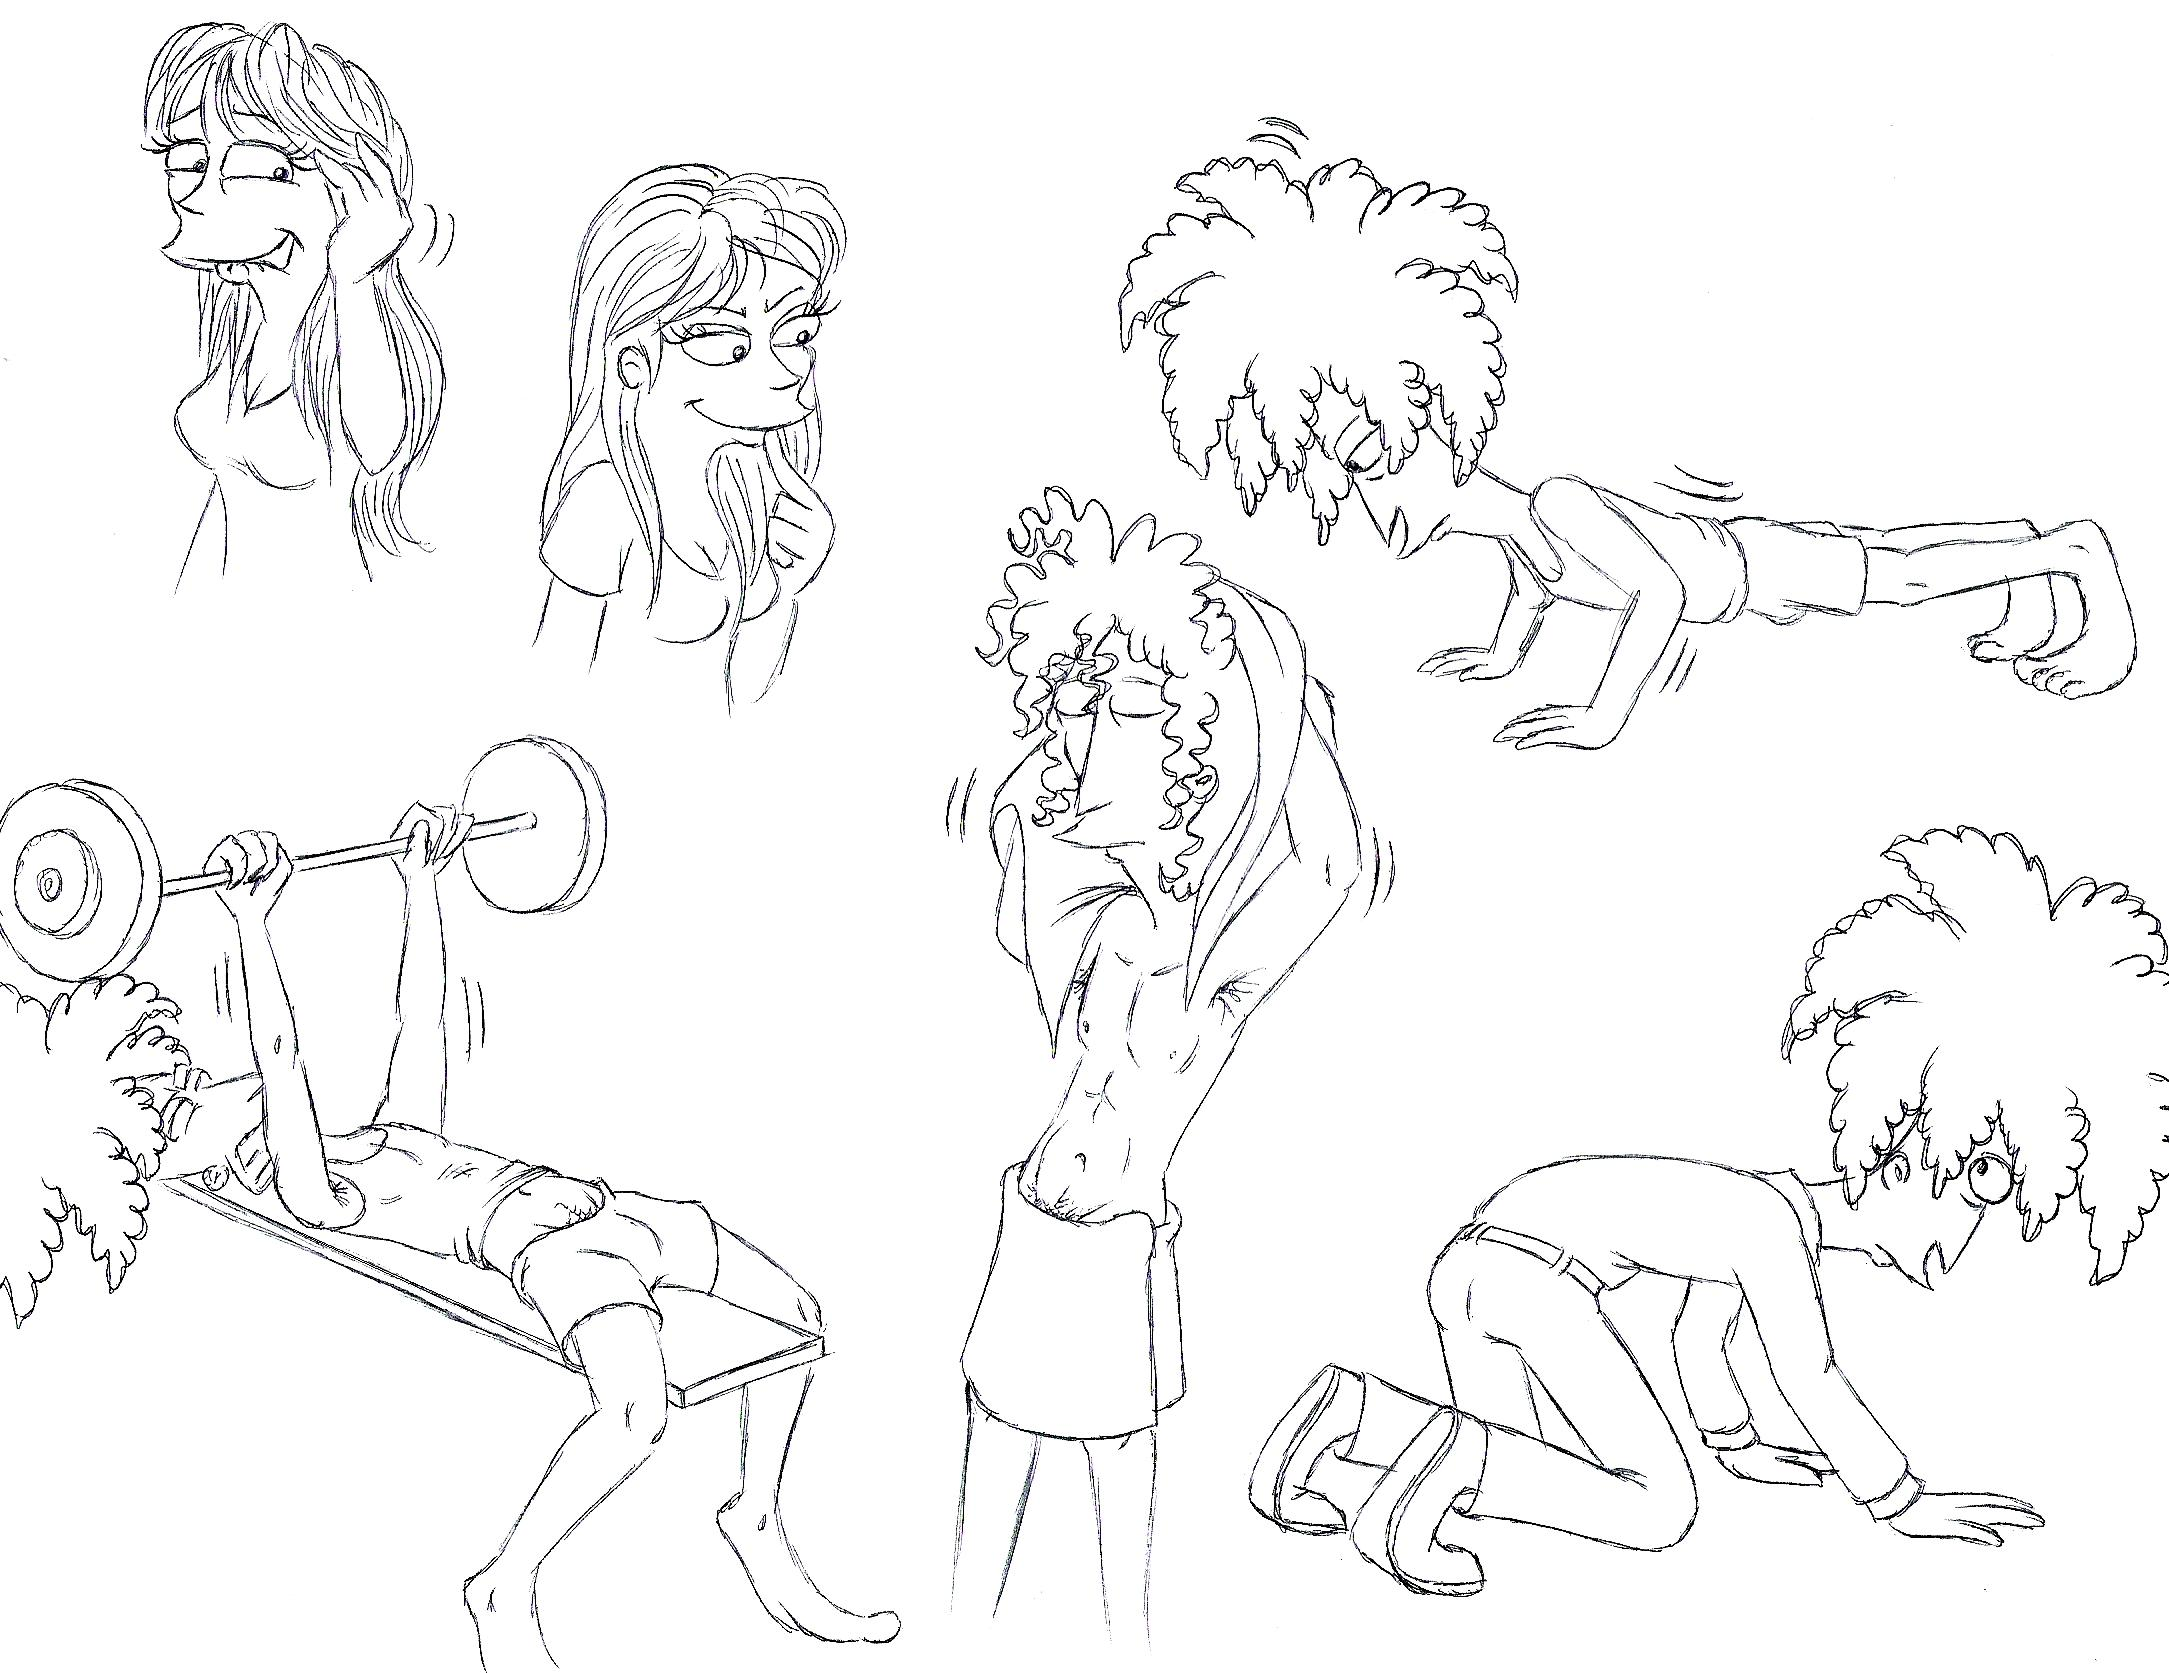 Sideshow Bob sketches 4 by Nevuela